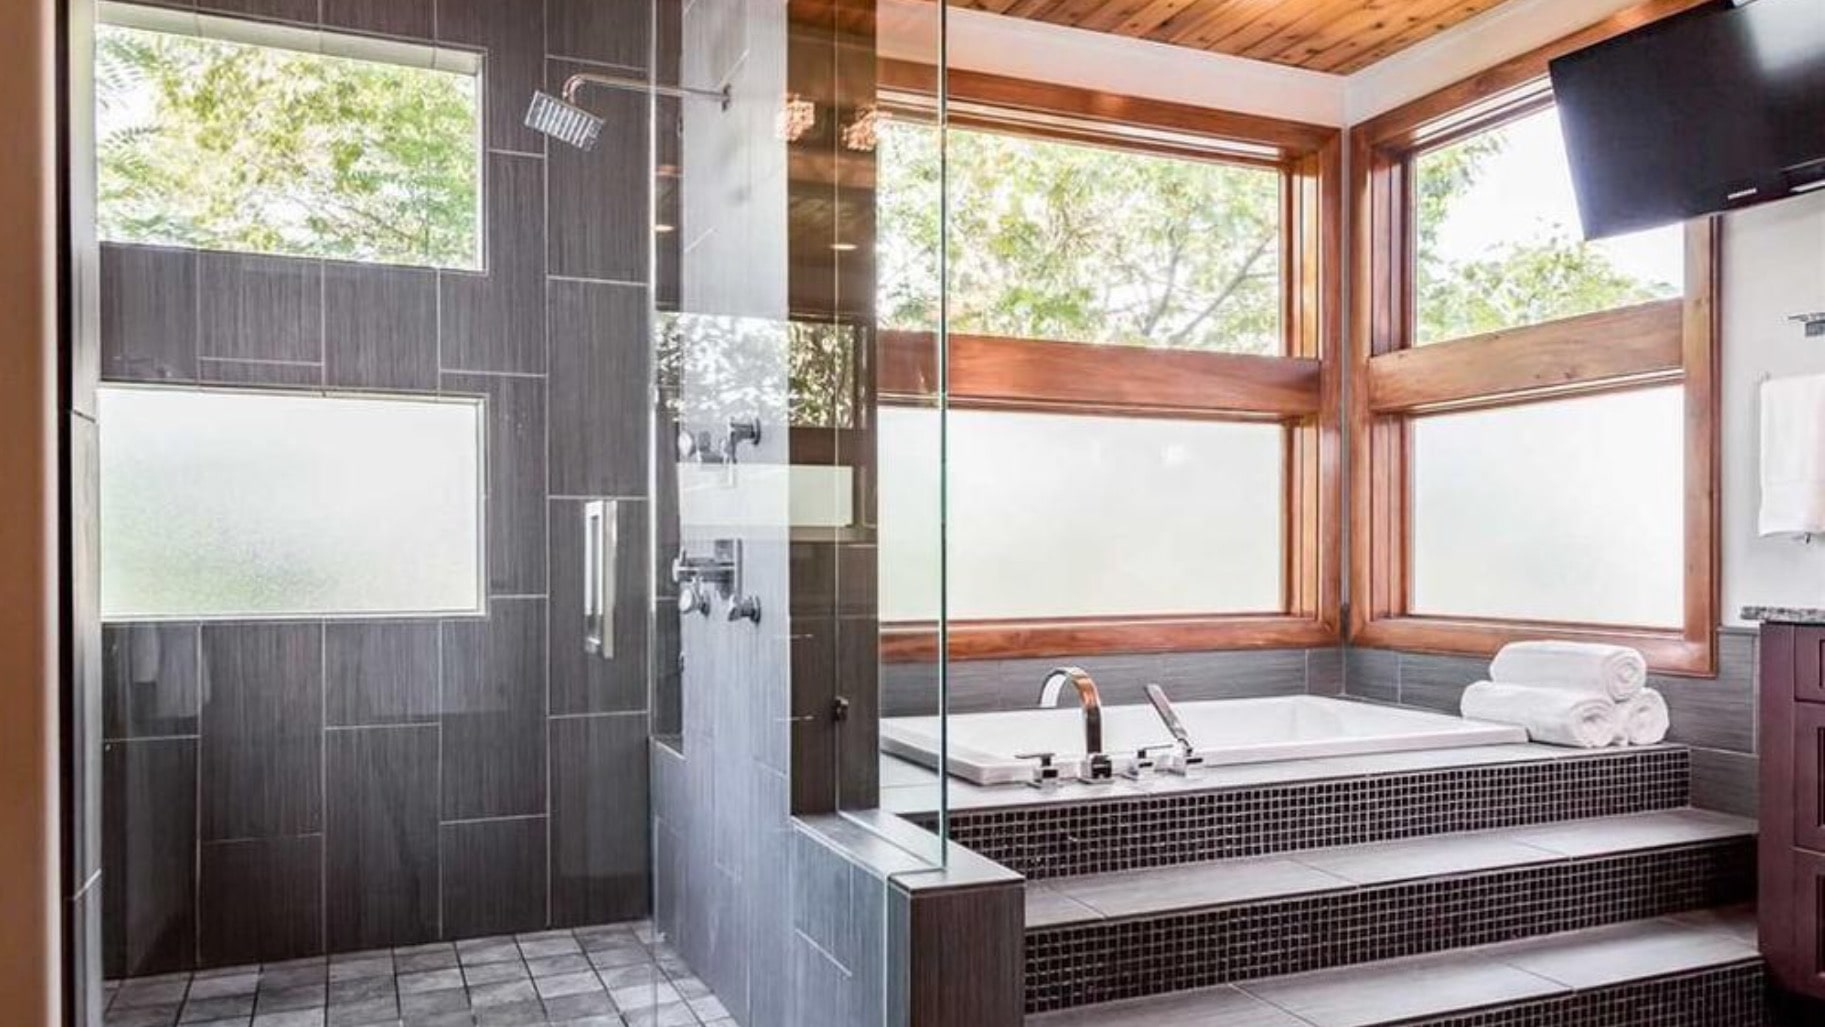 Master bath with frosted and clear glass to let in as much natural light as possible while still providing privacy.